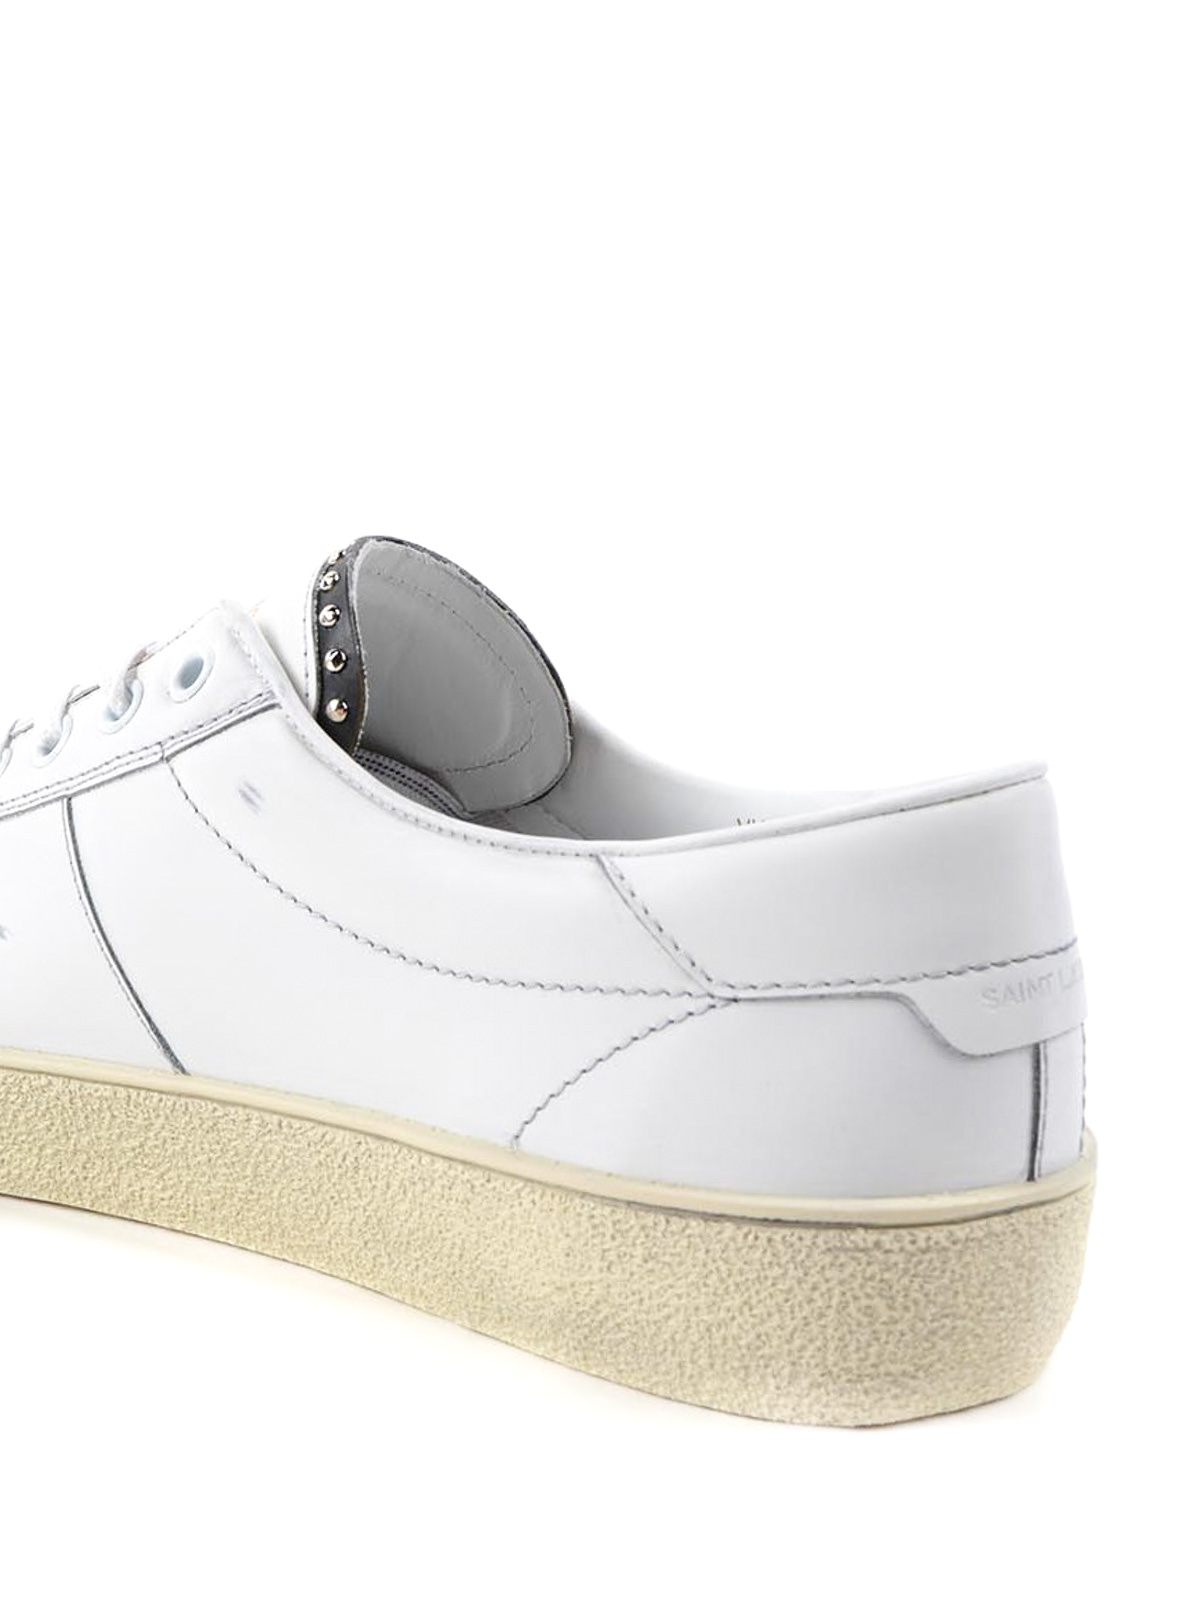 a0868f048415 Saint Laurent - Micro studs leather sneakers - trainers - 458946 ...